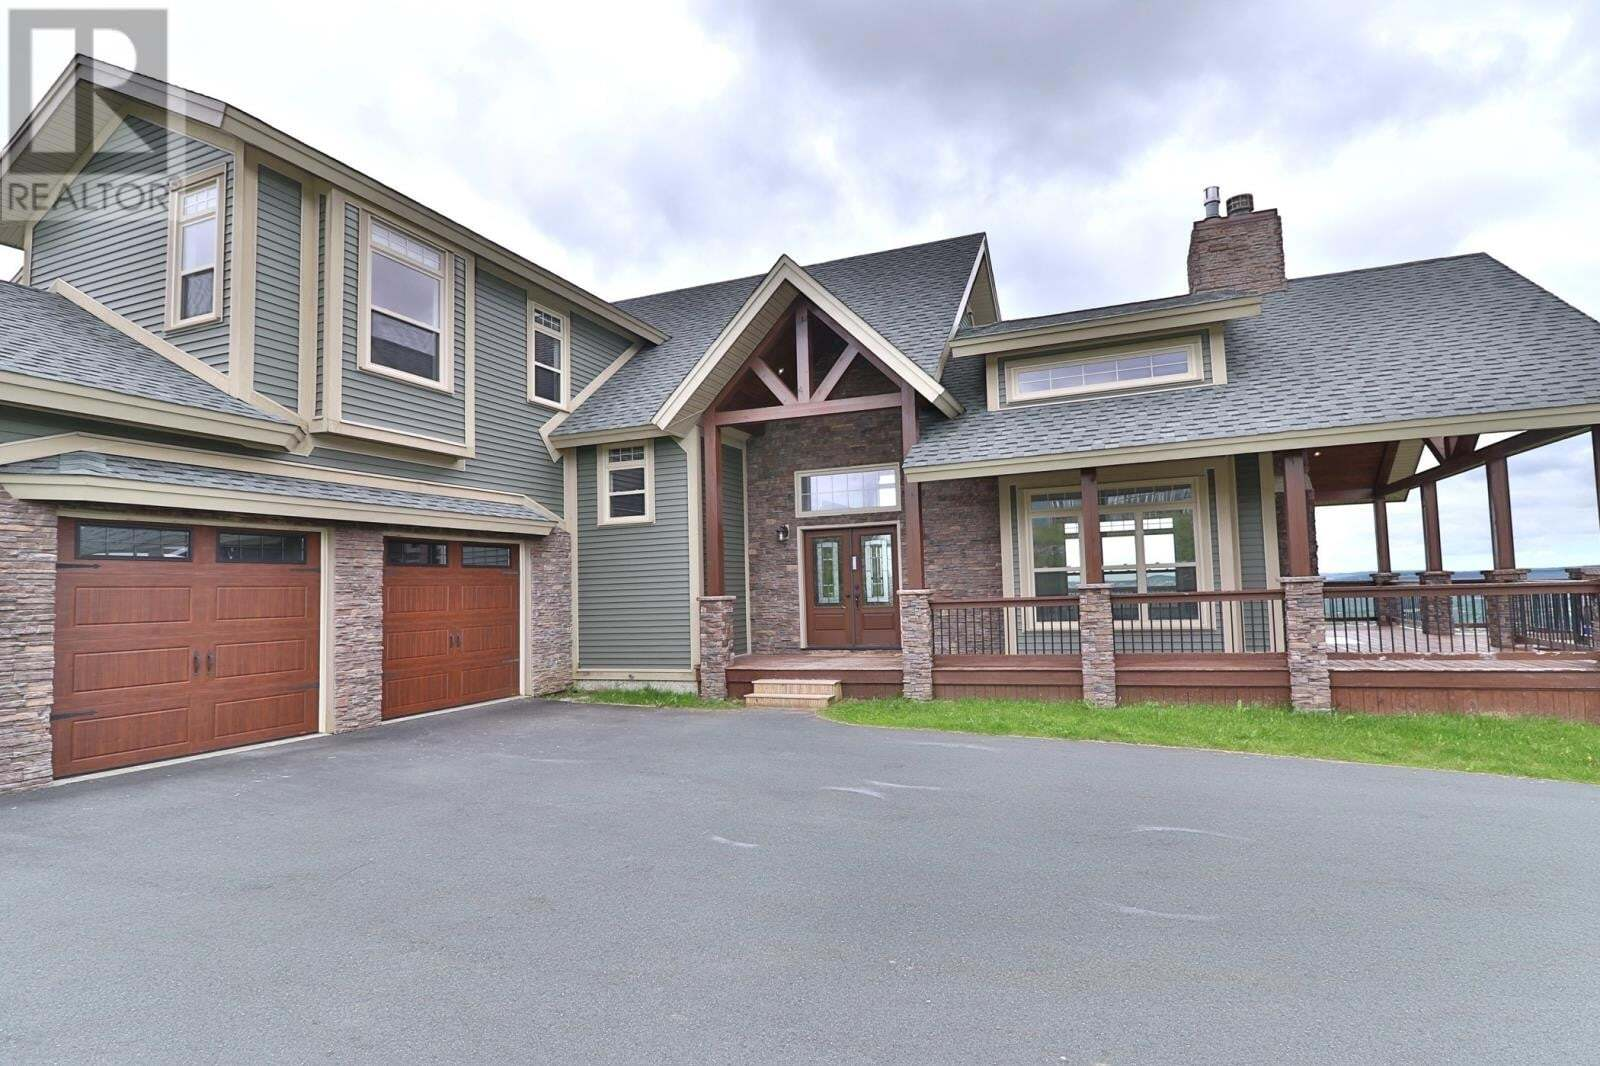 House for sale at 8 Ivys Wy Logy Bay Newfoundland - MLS: 1217373